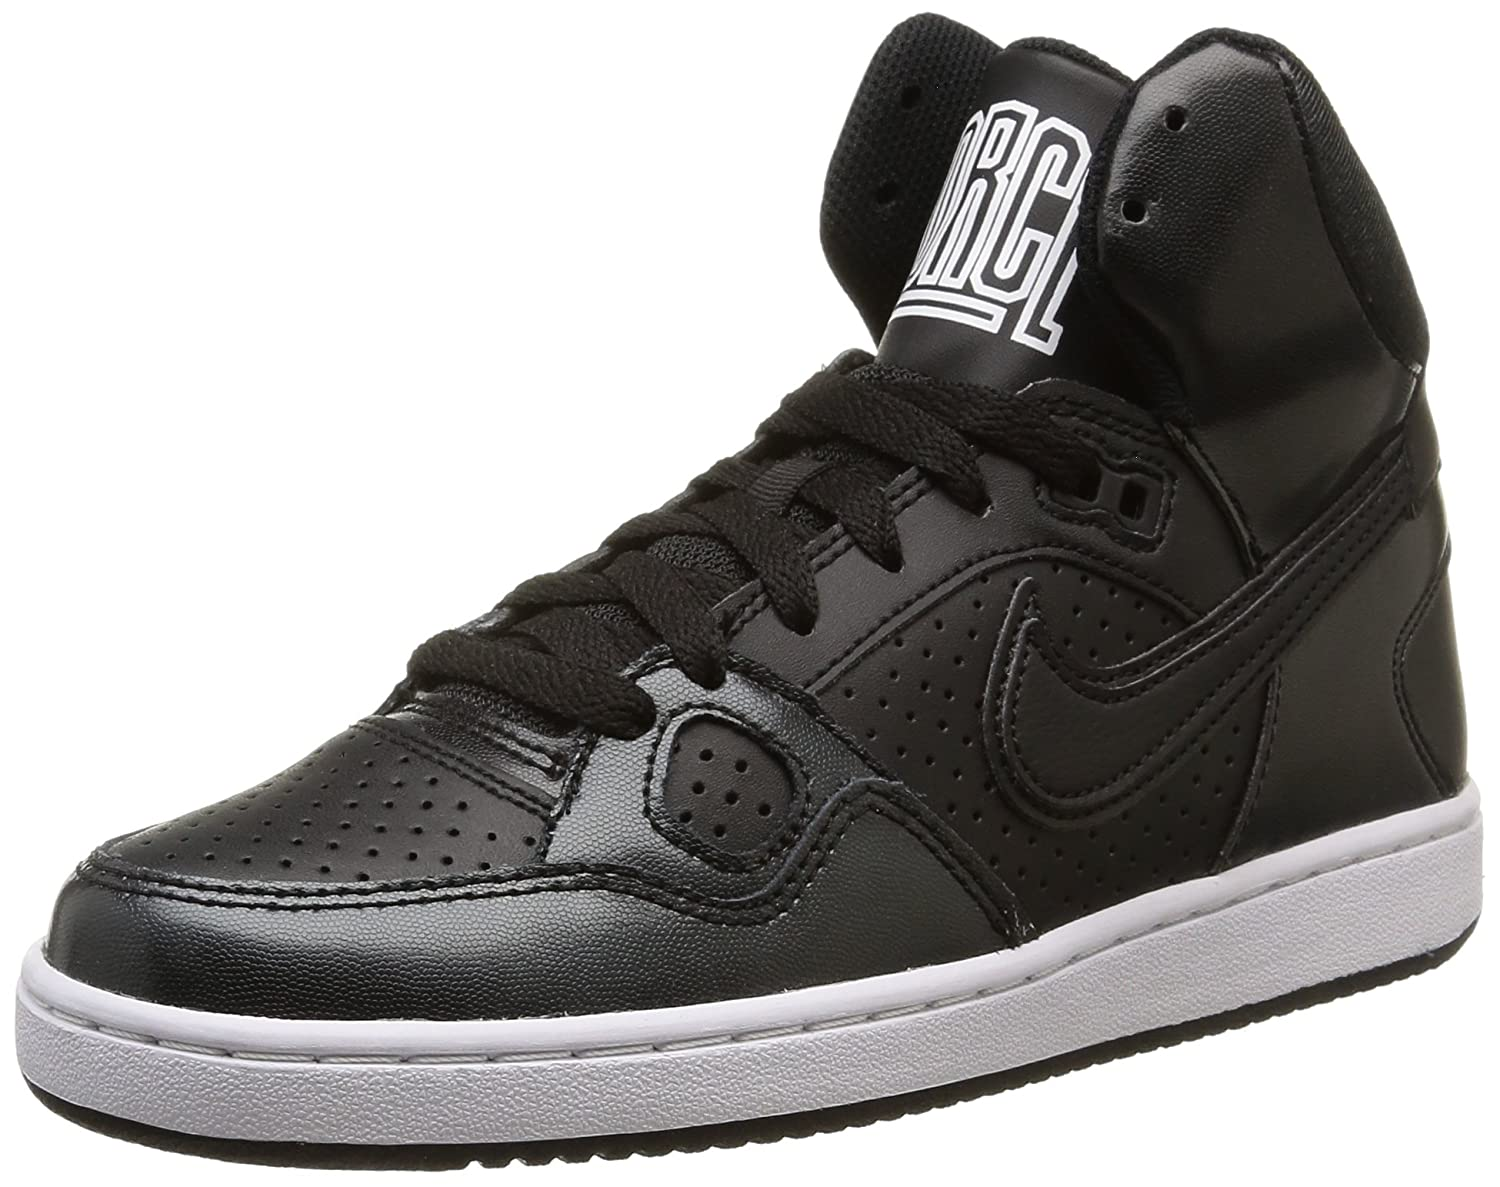 hot sale online 0c56c dc941 Amazon.com   Nike Women s Son Of Force MId Basketball shooes Black    Basketball